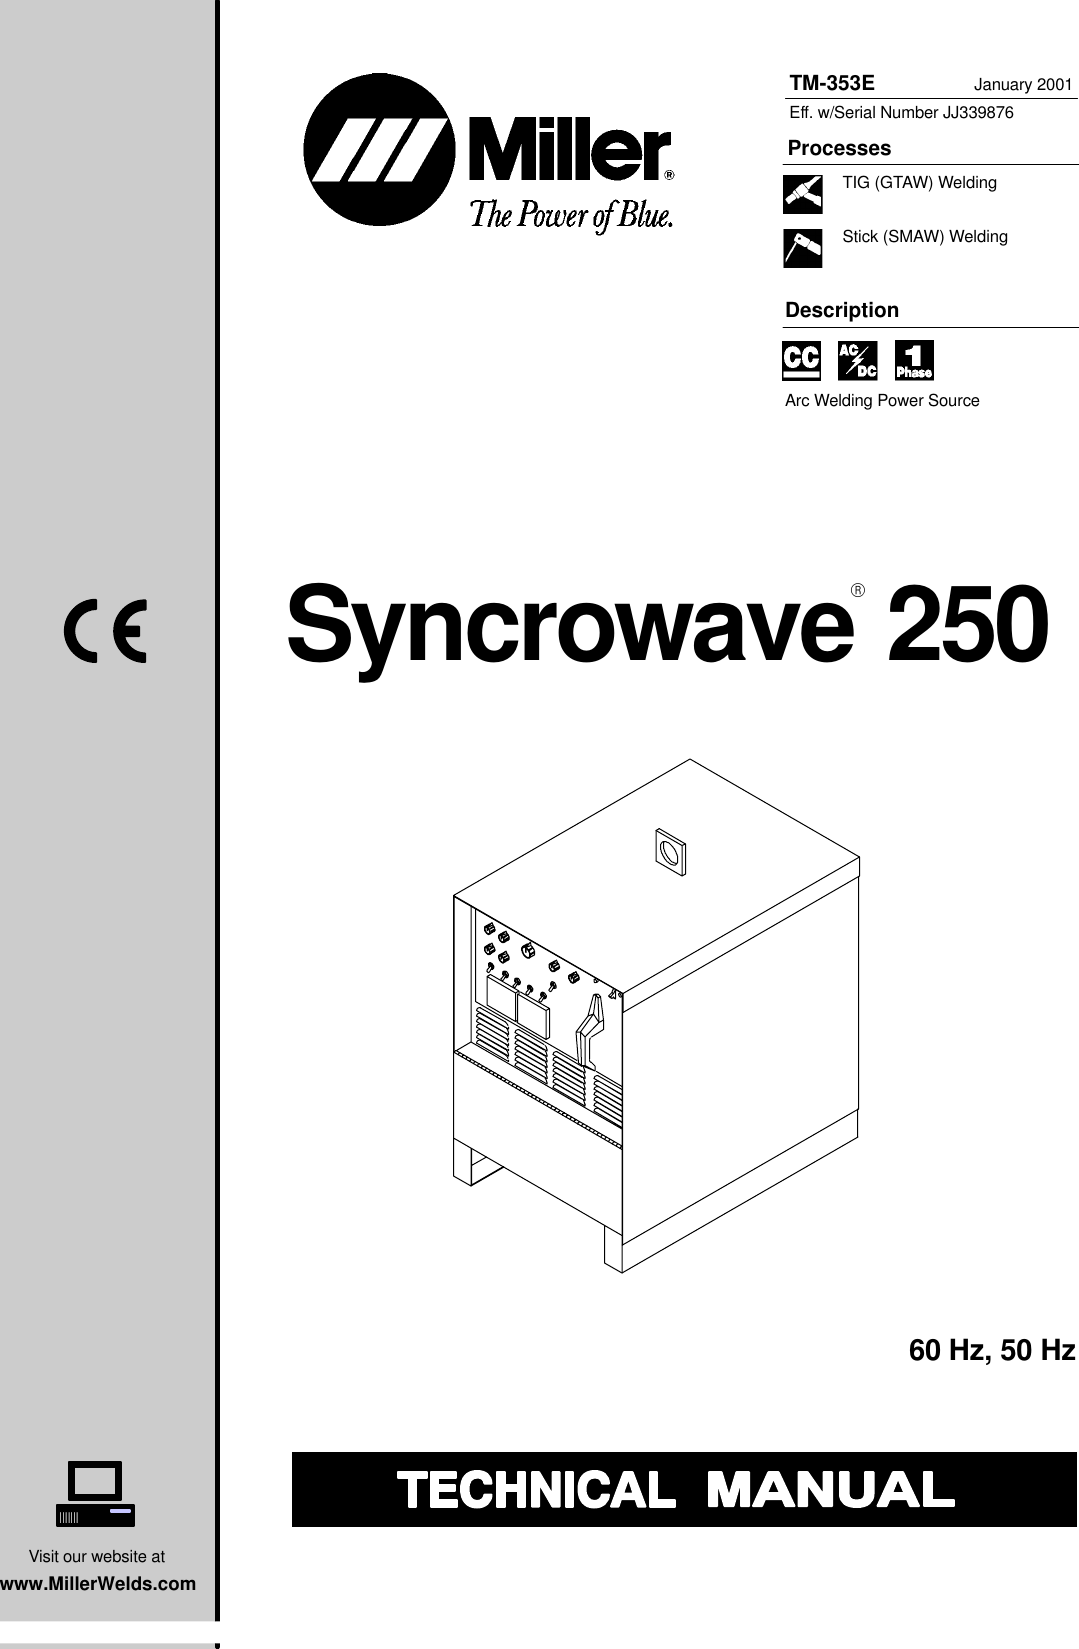 Miller Electric Syncrowave 250 Technical Manual Manualslib Makes It 6 Pin Plug Wiring Diagram Easy To Find Manuals Online